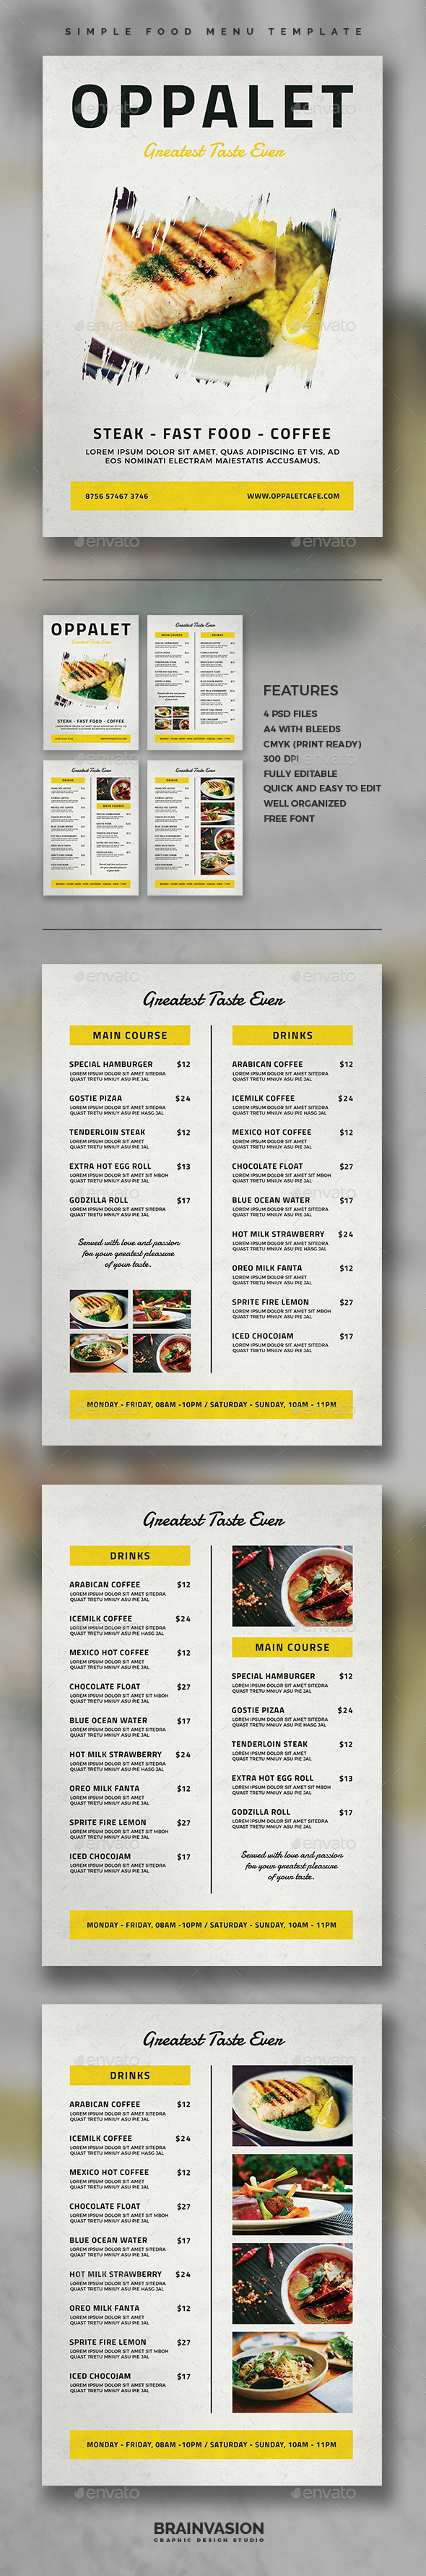 Simple Food Menu Template - Food Menus Print Templates